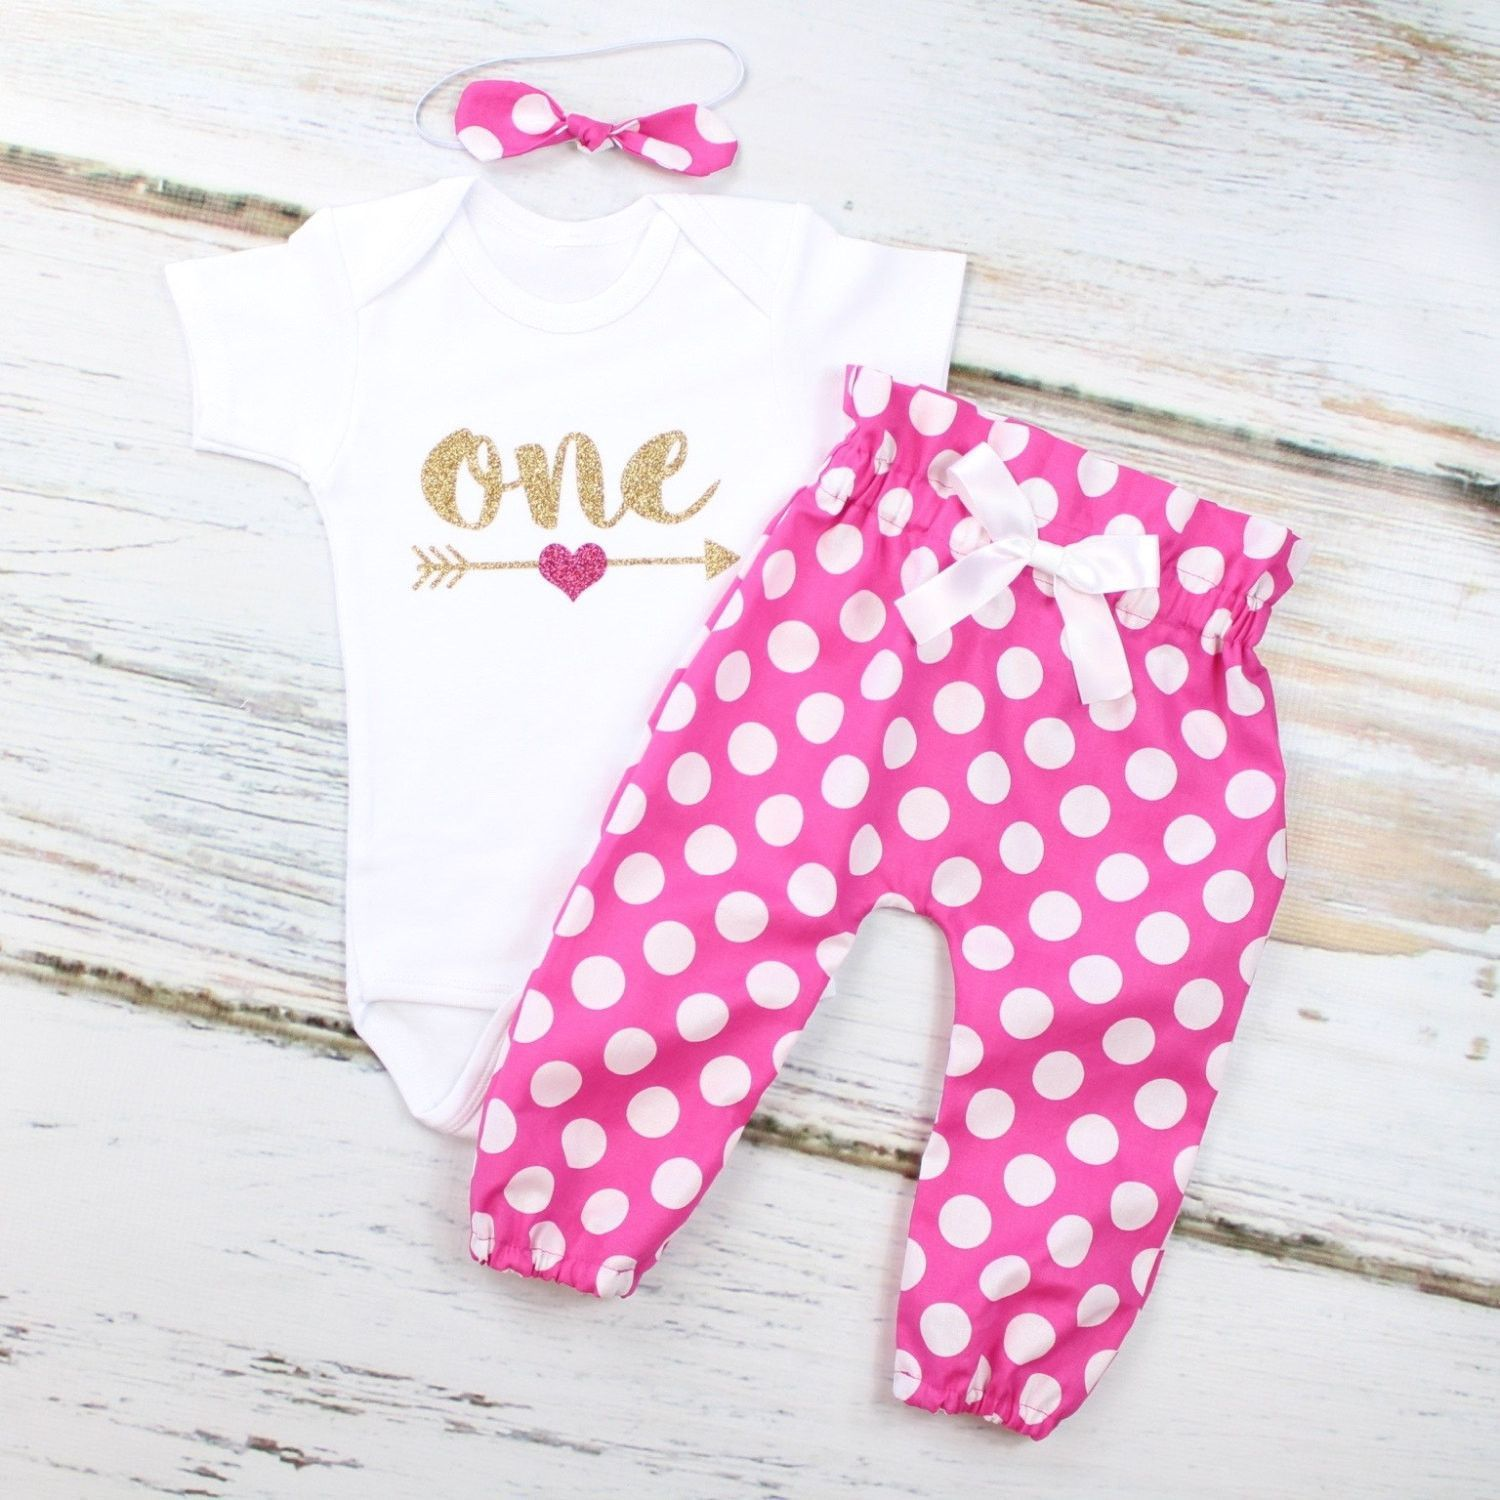 189b7ebf5 Baby Girls 1st Birthday Outfit | Hot Pink w/ White Polka Dot High Waisted Pants  Outfit and Knotted Headband | Gold Arrow w/ Pink Heart